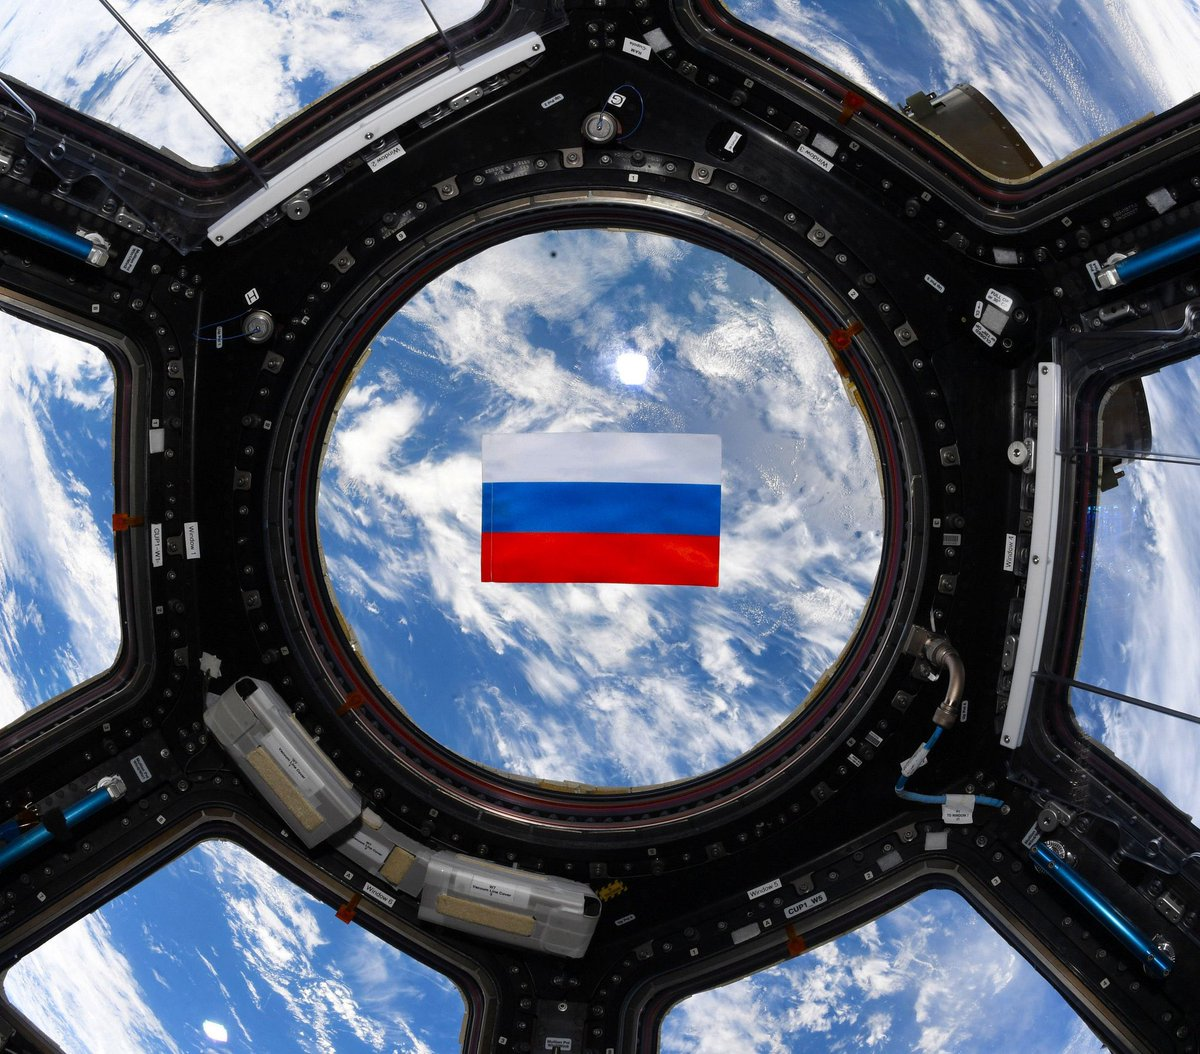 🚀🇷🇺 #RussiaDay is celebrated everywhere, even #space! Cosmonauts @novitskiy_iss & Pyotr Dubrov send congrats from @Space_Station!   👨🚀👨🚀 Our heartfelt feelings for the #Motherland grow with each passing moment, a sincere belief that #Russia is the dearest place on #Earth 🌏 https://t.co/1Aw8gFVjJs